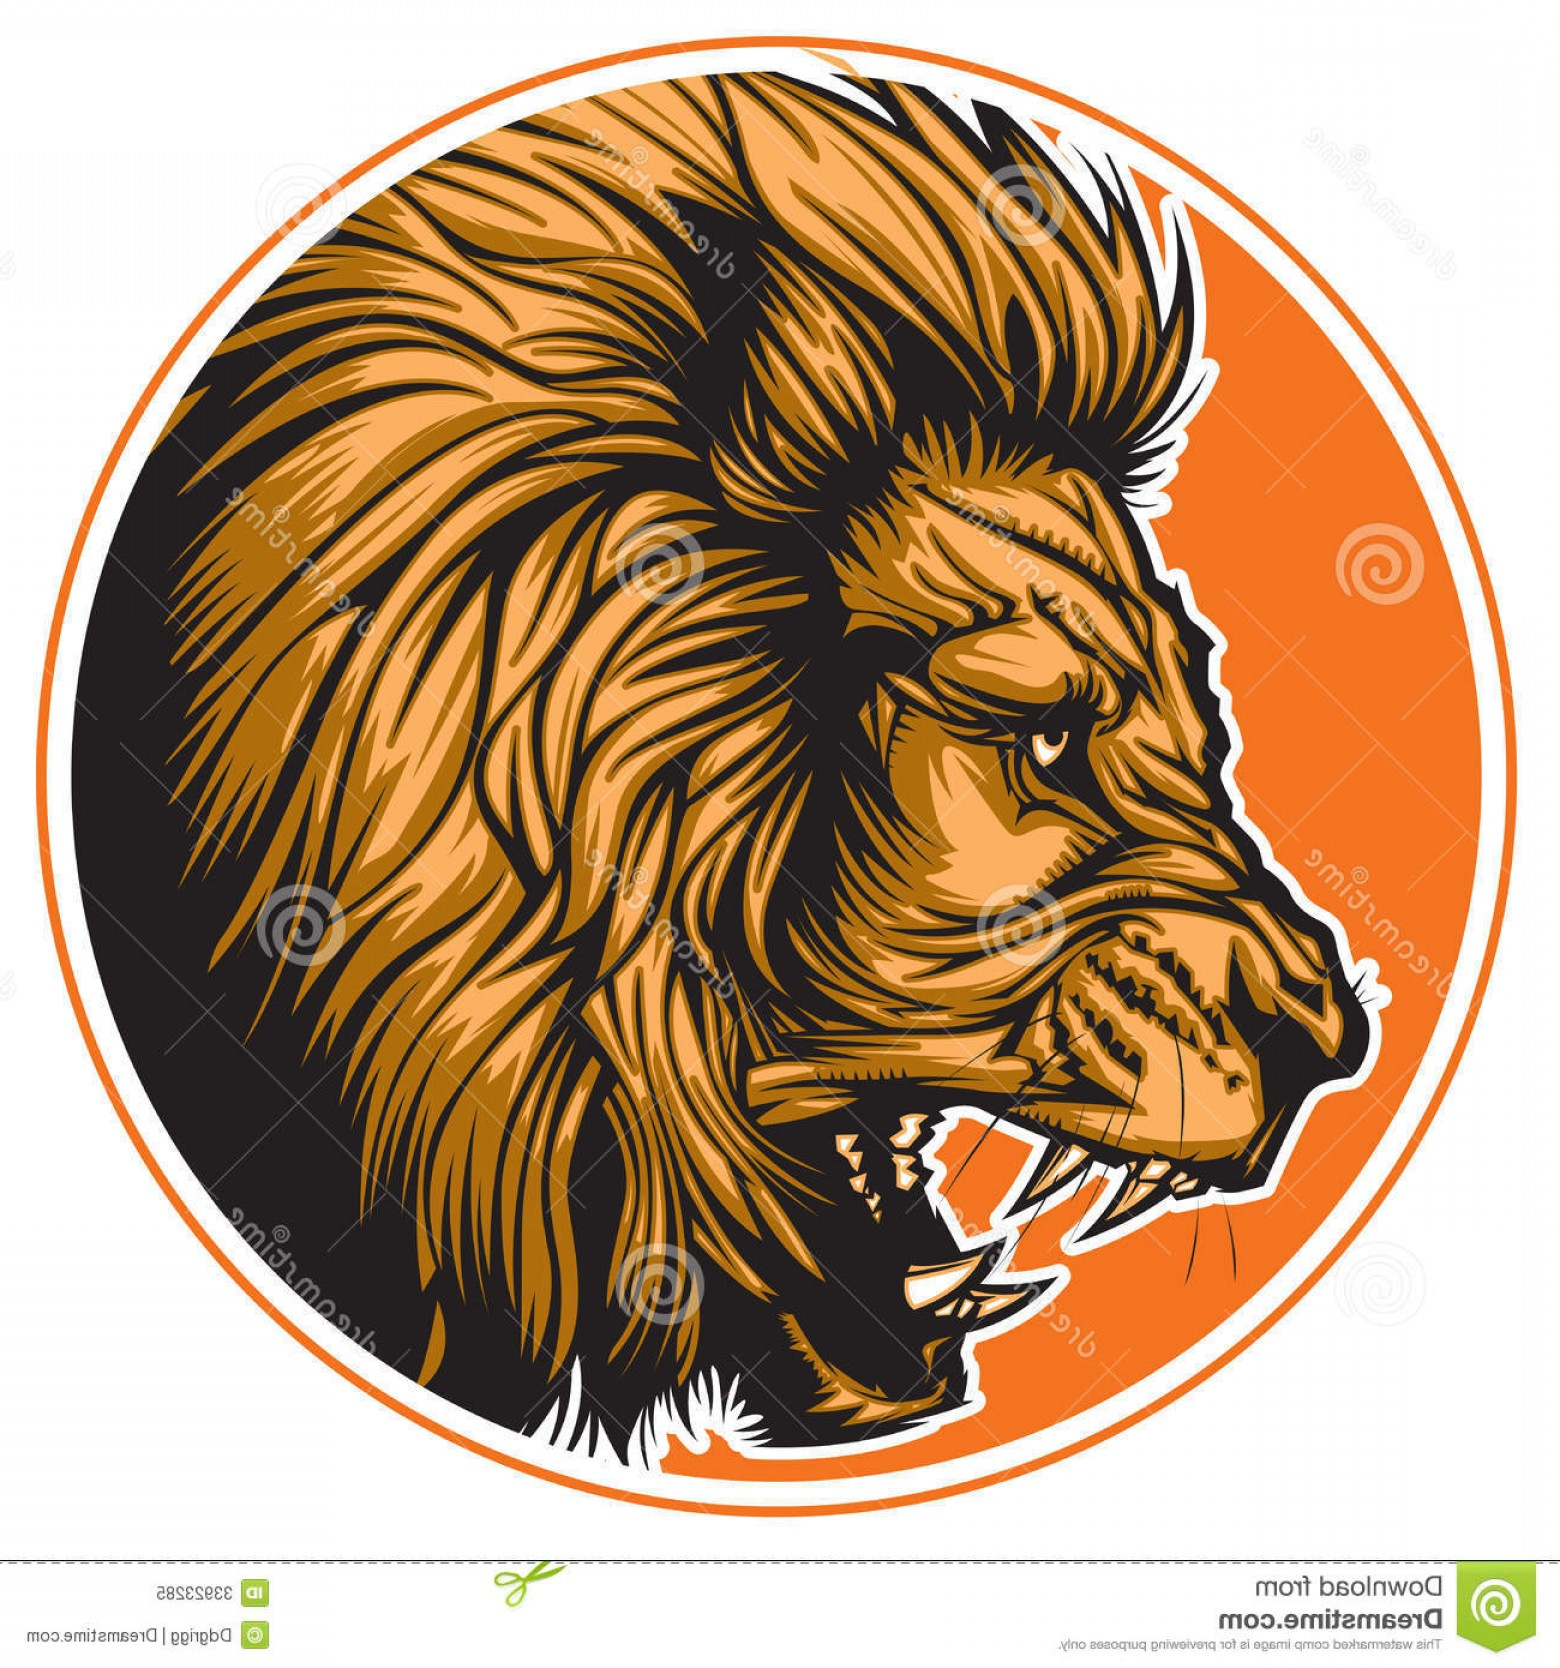 Leo Symbol Zodiac Vector: Royalty Free Stock Photo Zodiac Leo Black Lion Representing Sign Just Sharp Vector Graphic General Use Layered Easy To Edit Image